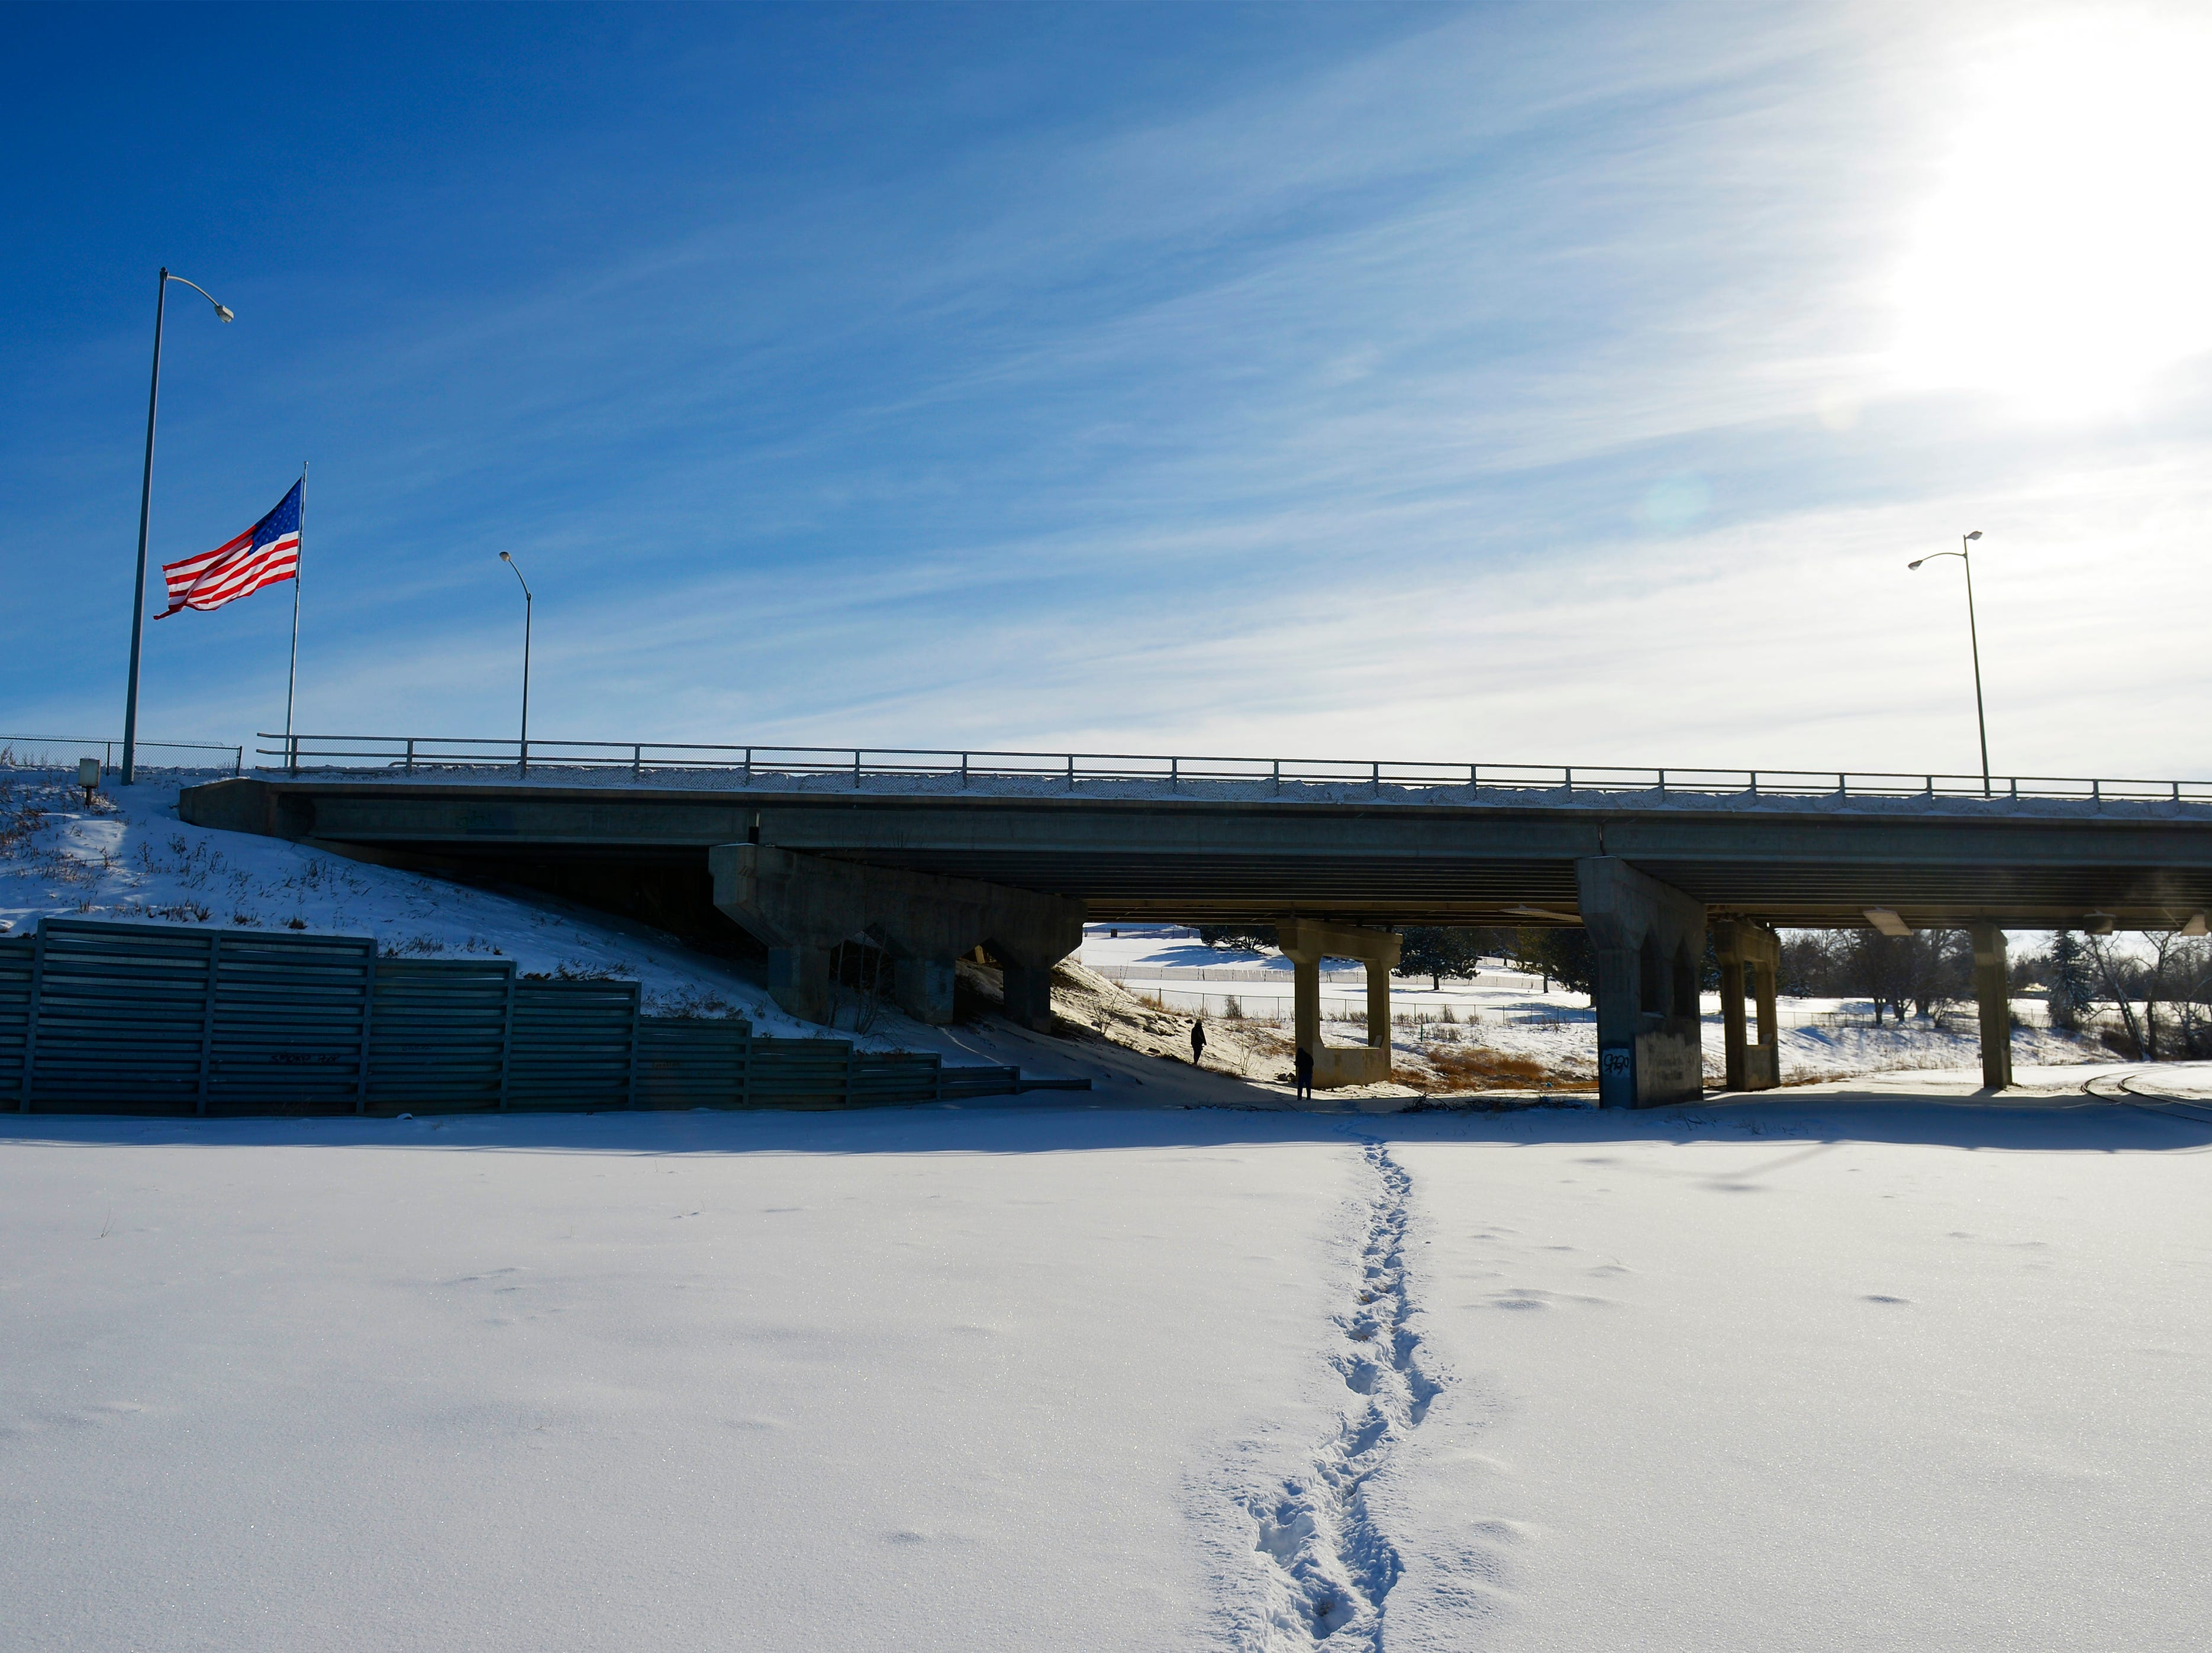 The 10th Avenue South overpass is sometimes used as a campsite for the homeless in Great Falls.